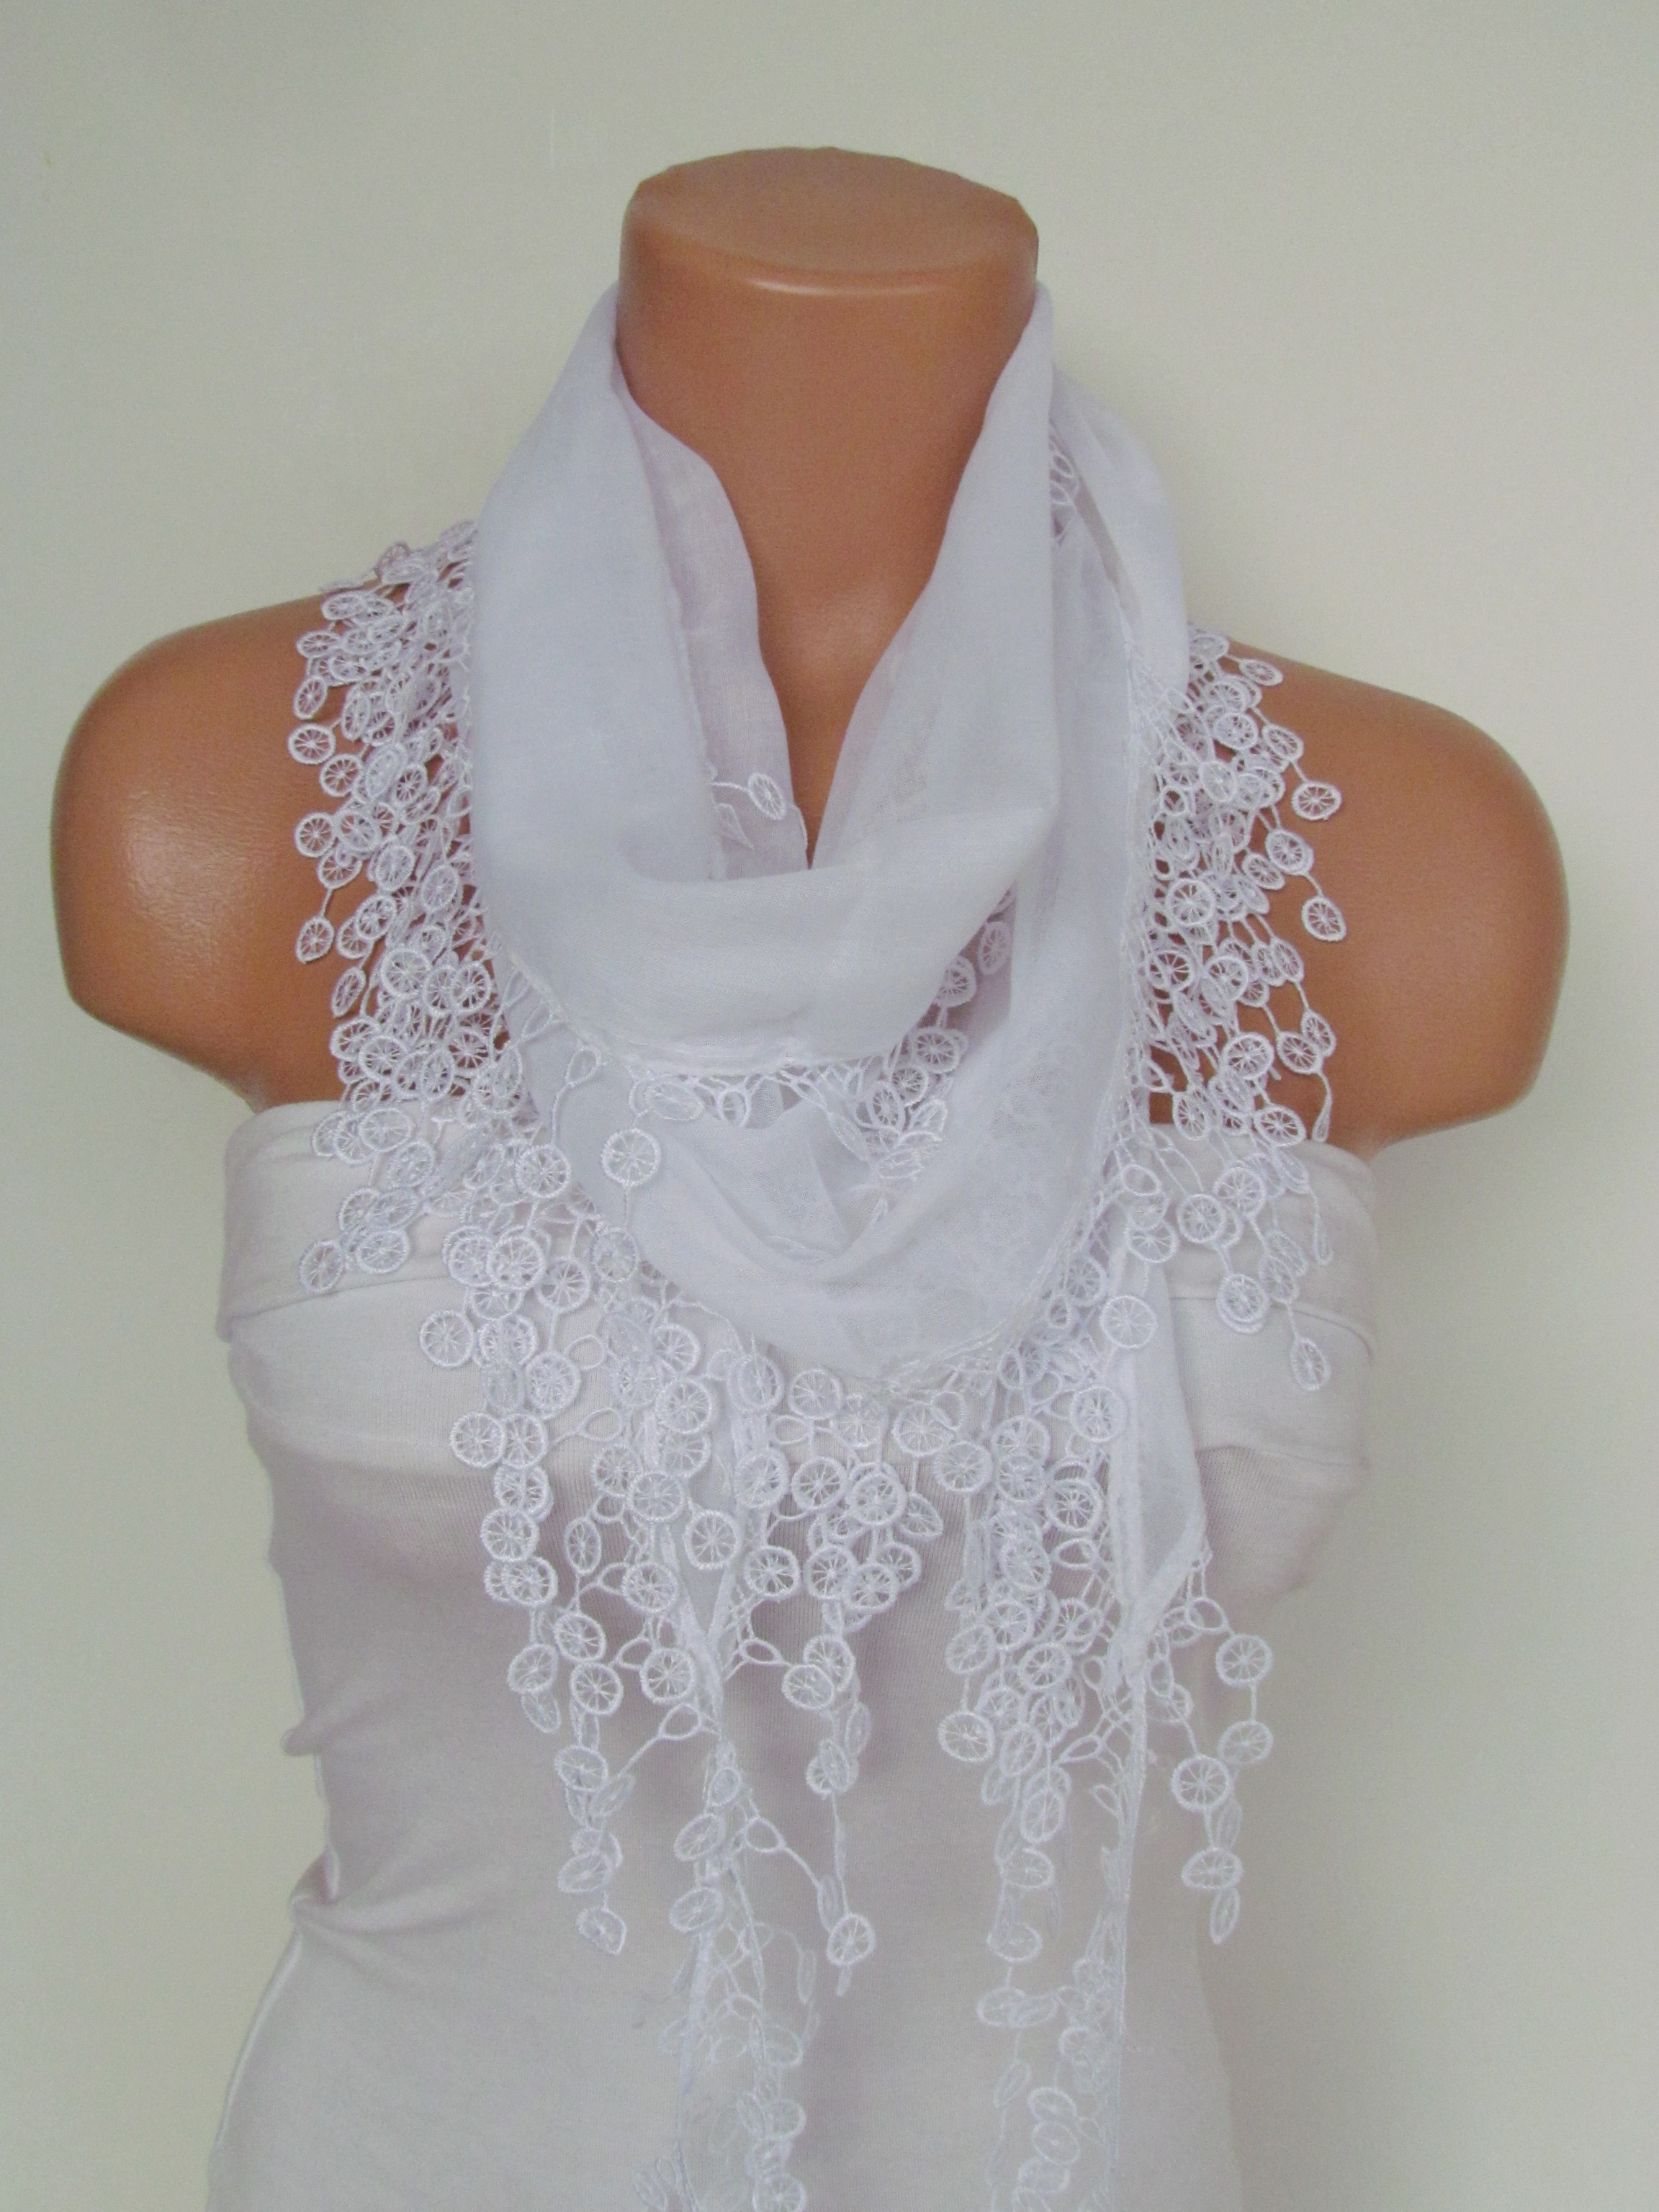 059b89676ec1d Long Scarf With Fringe-New Season Scarf-Headband-Necklace- Infinity Scarf-  Spring Accessory-White Sc on Luulla